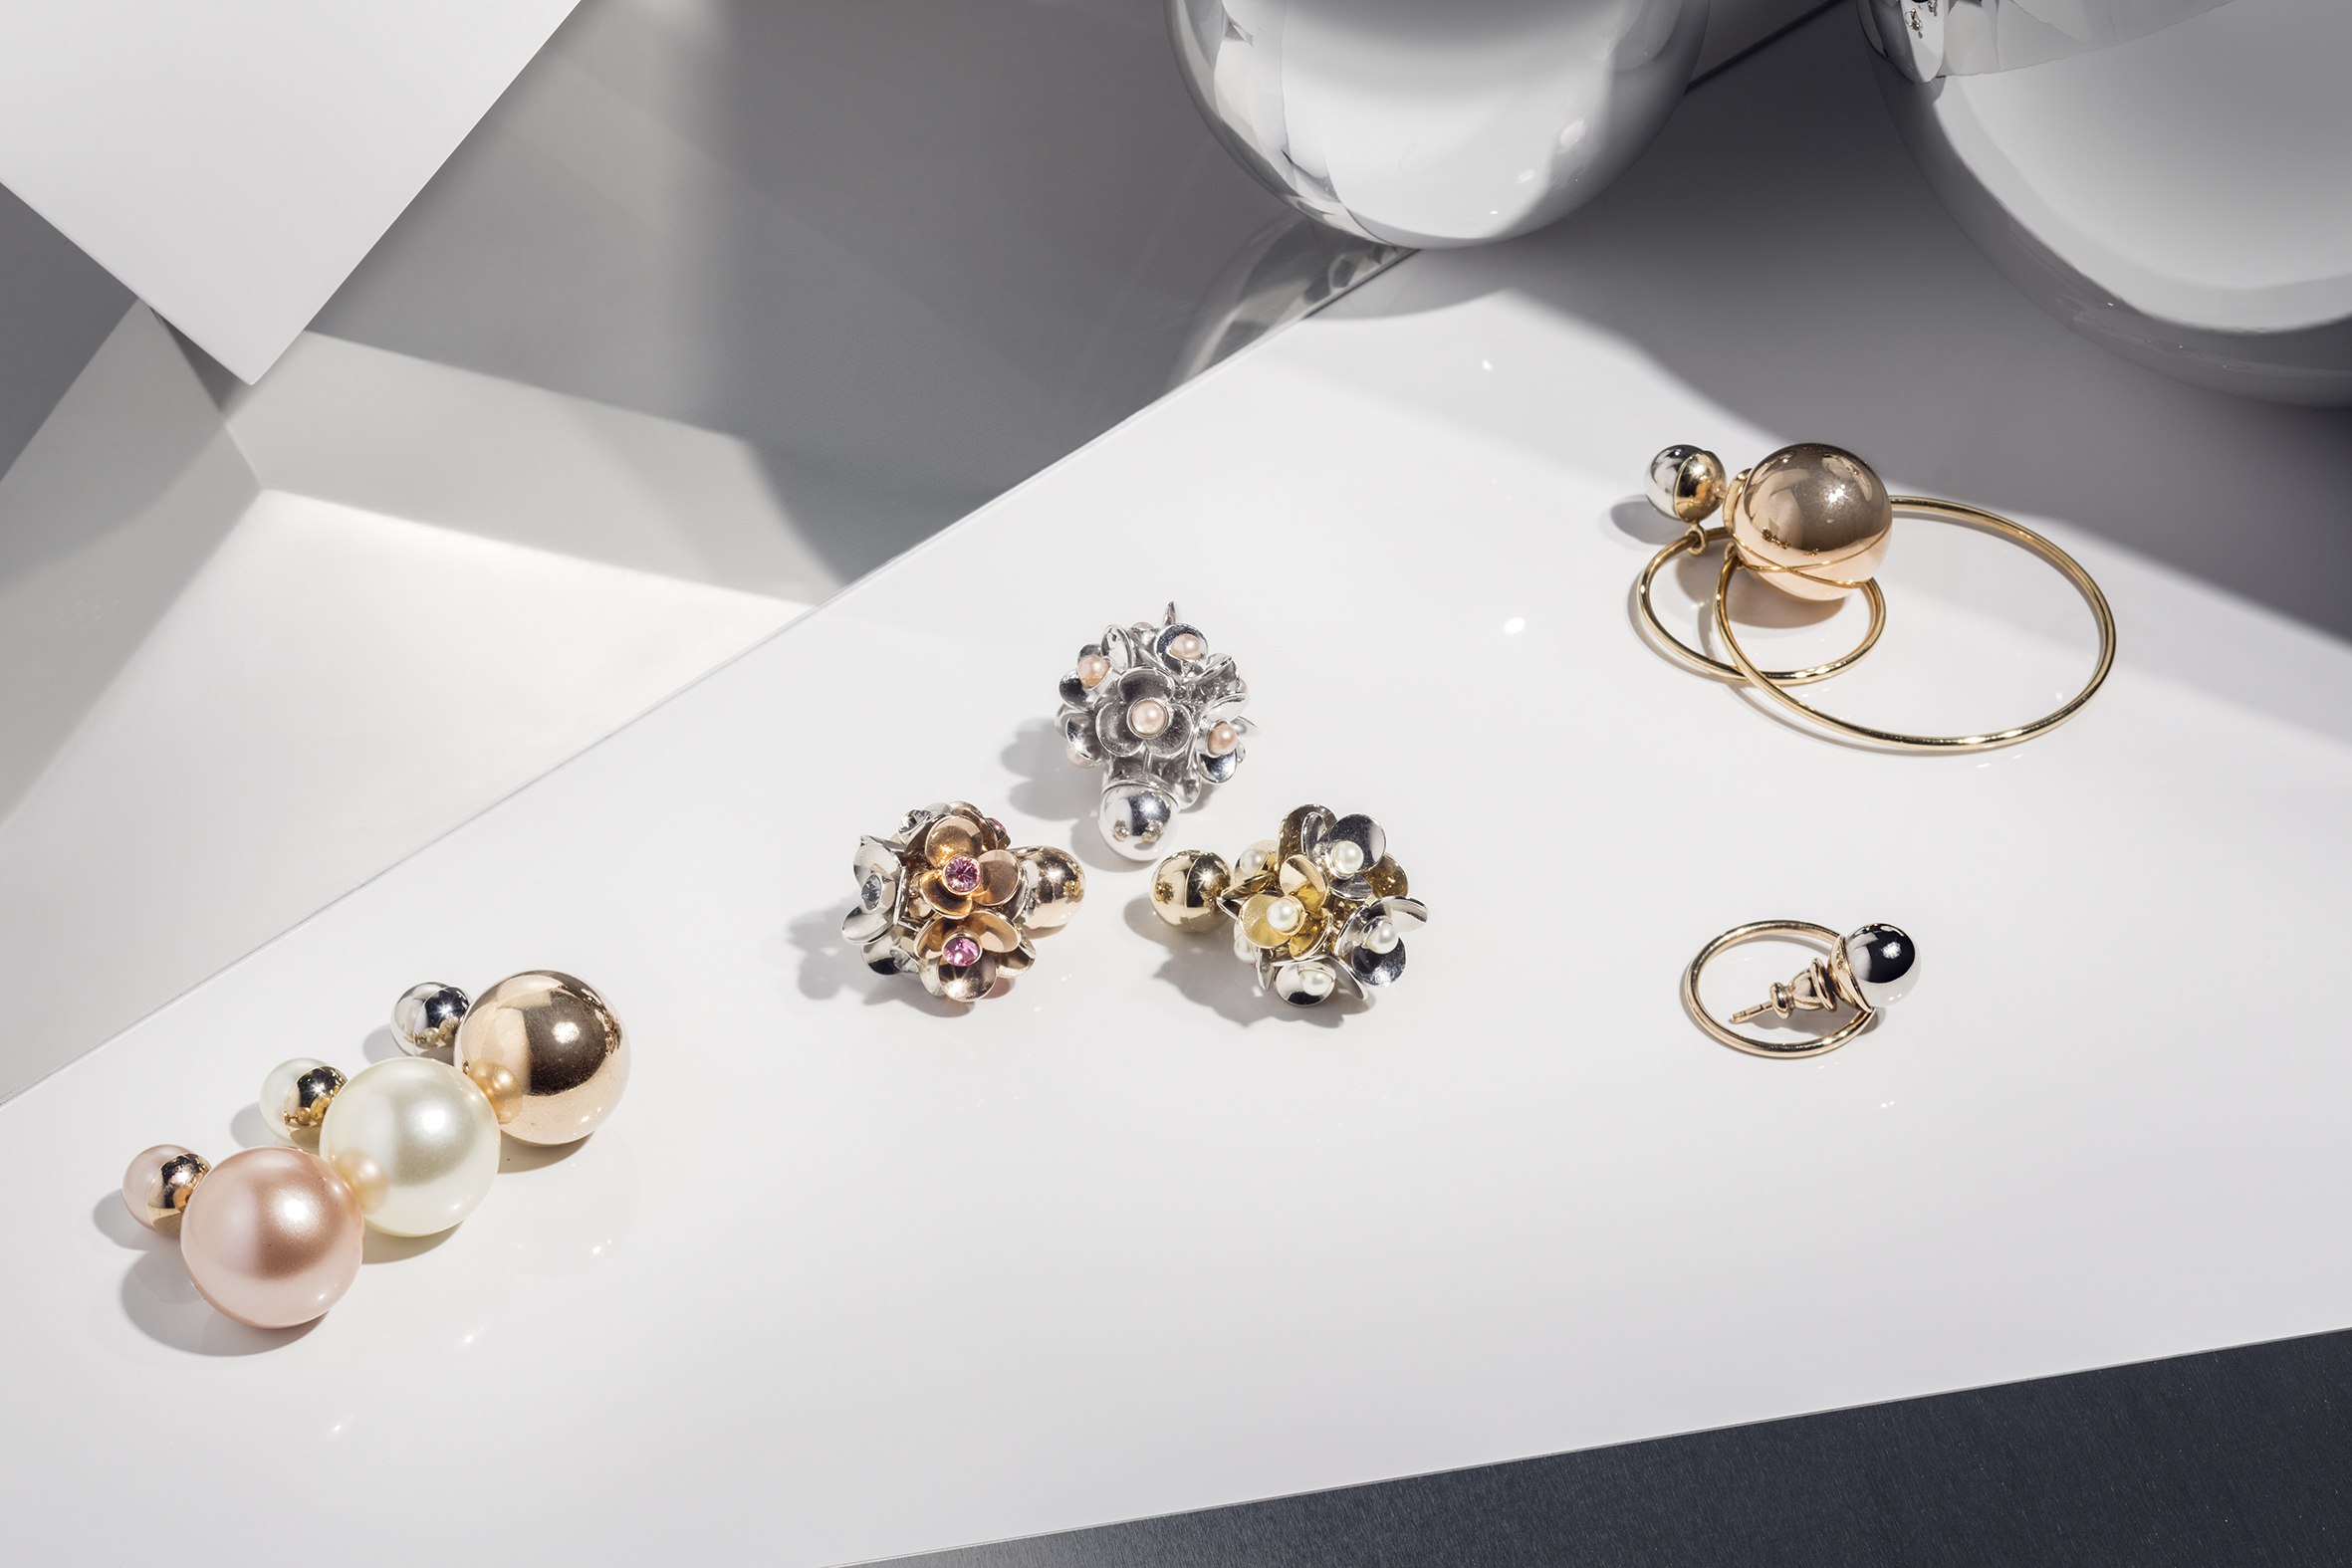 DIOR_XMAS2_EARRINGS_1_0787.jpg